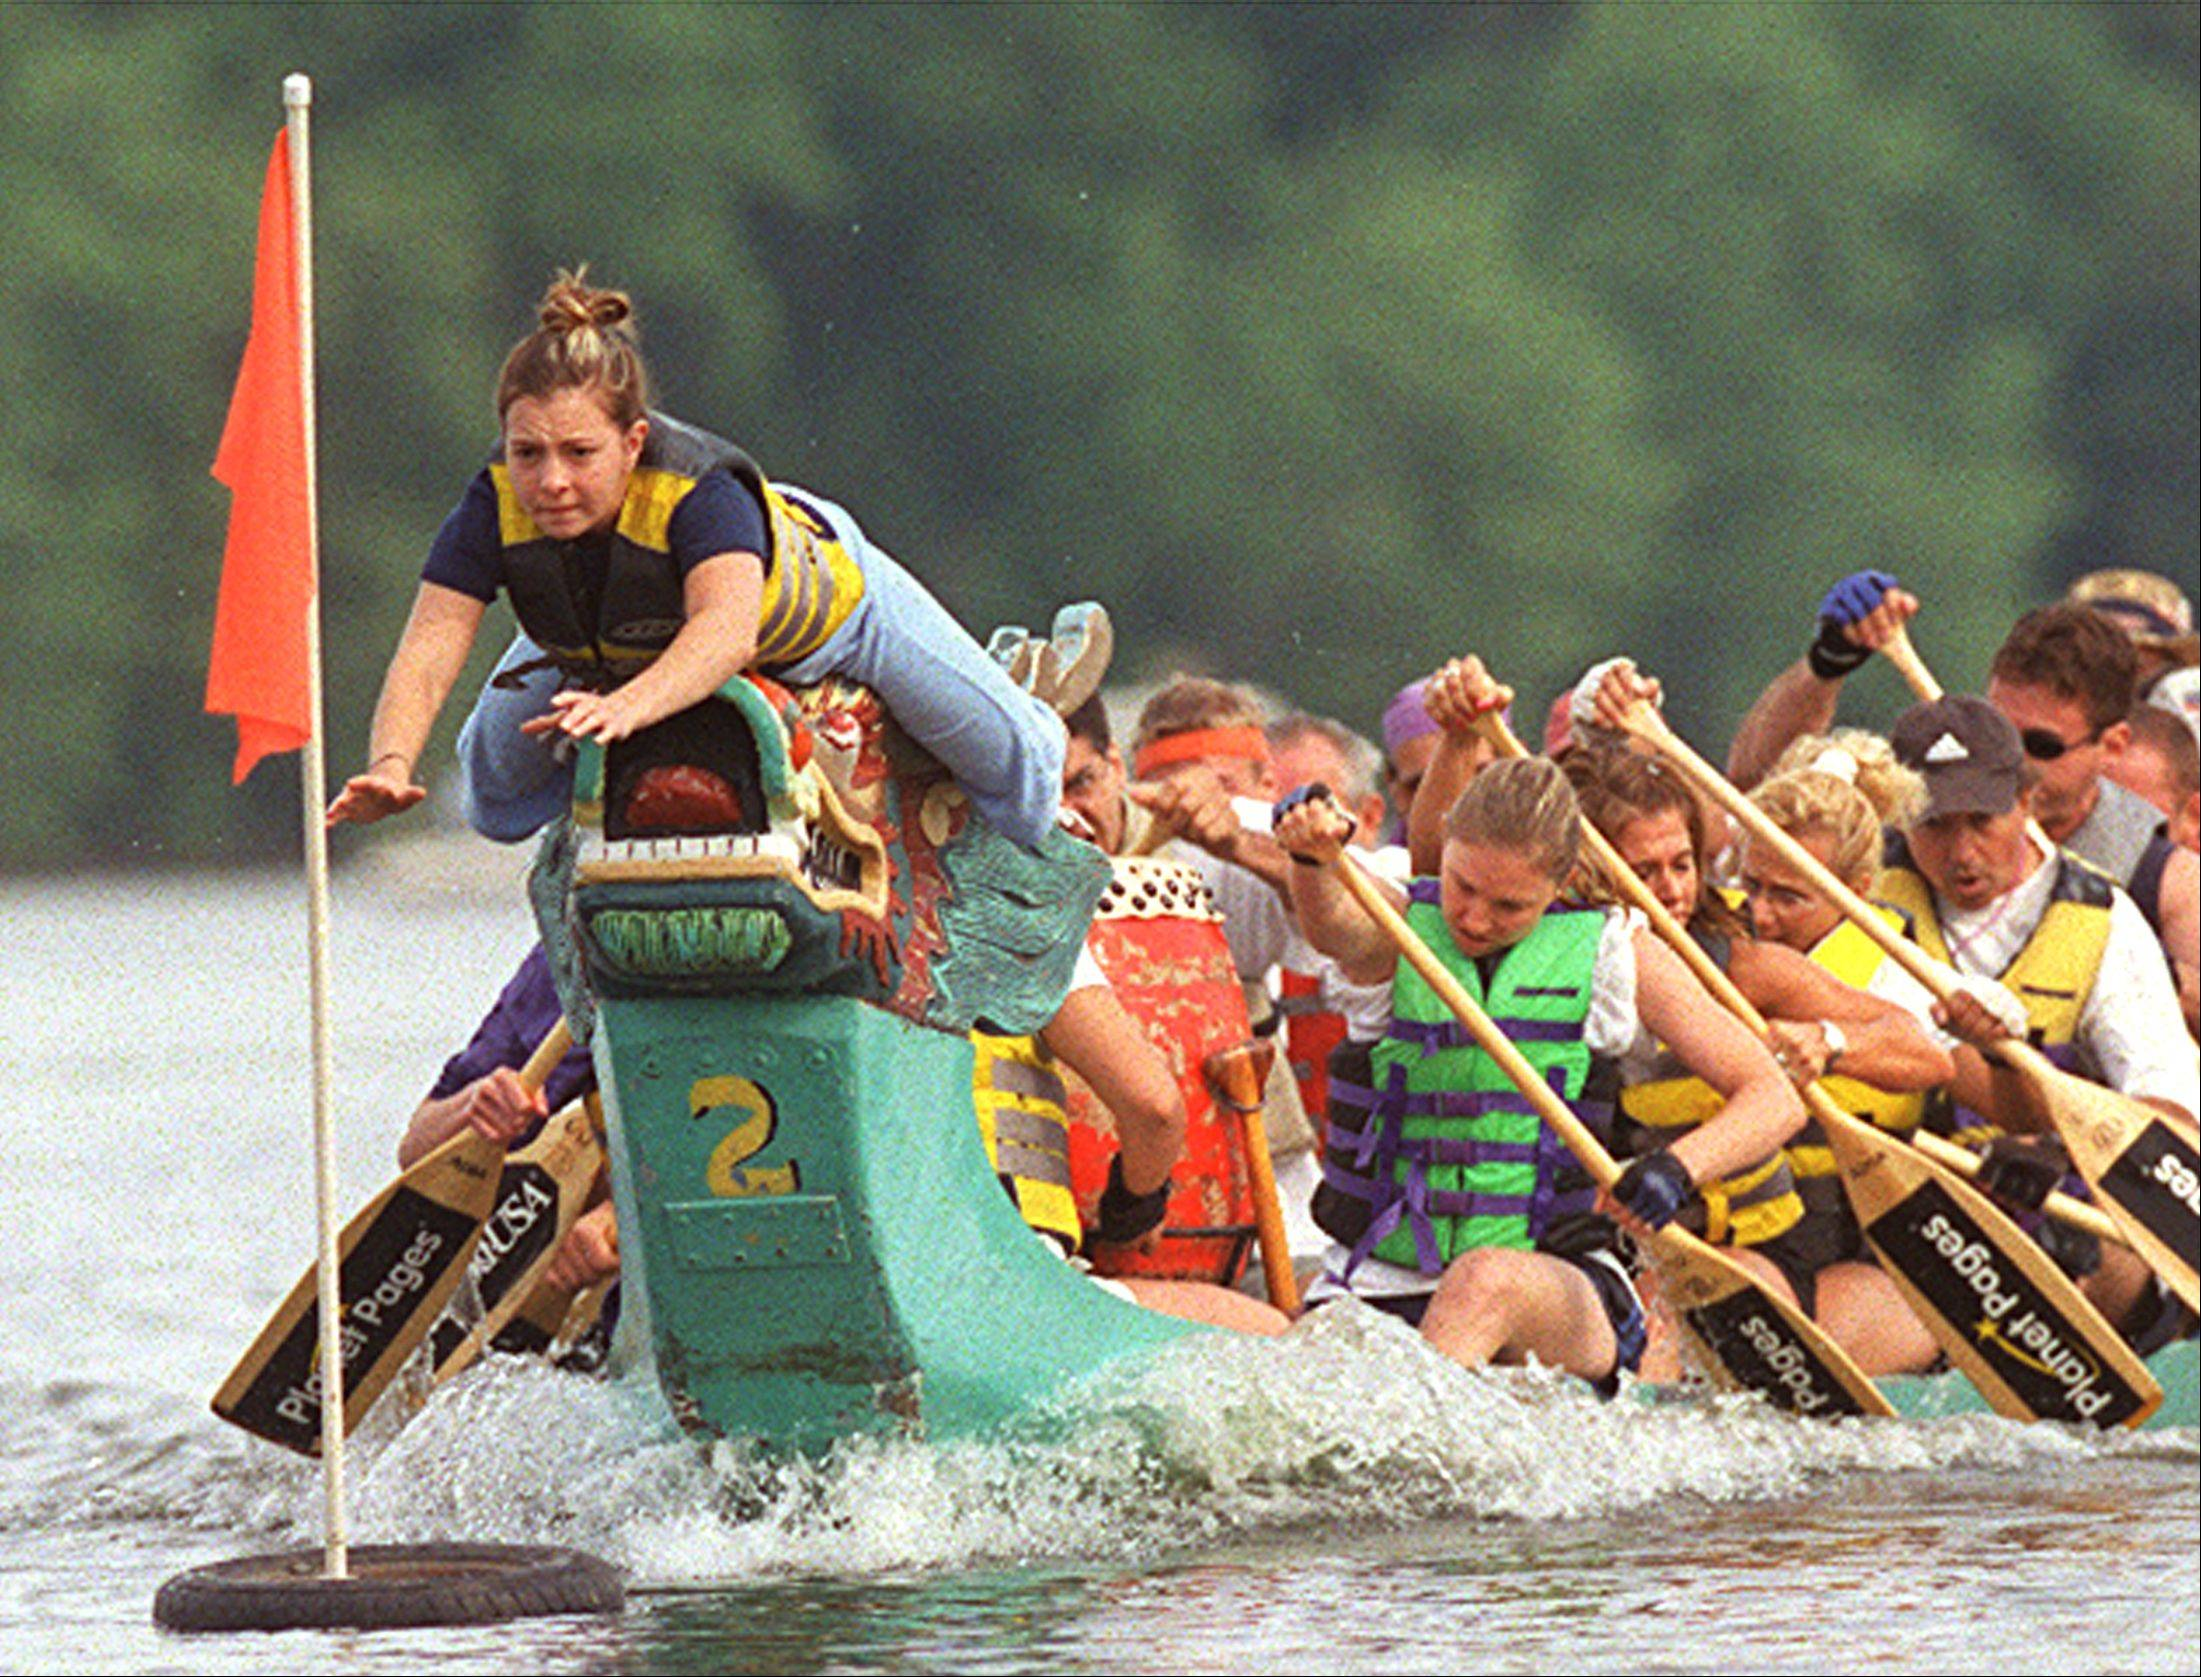 Dragon Boat races during the Pride of the Fox RiverFest represent one of the few active uses on the river in St. Charles that draws large groups of people.